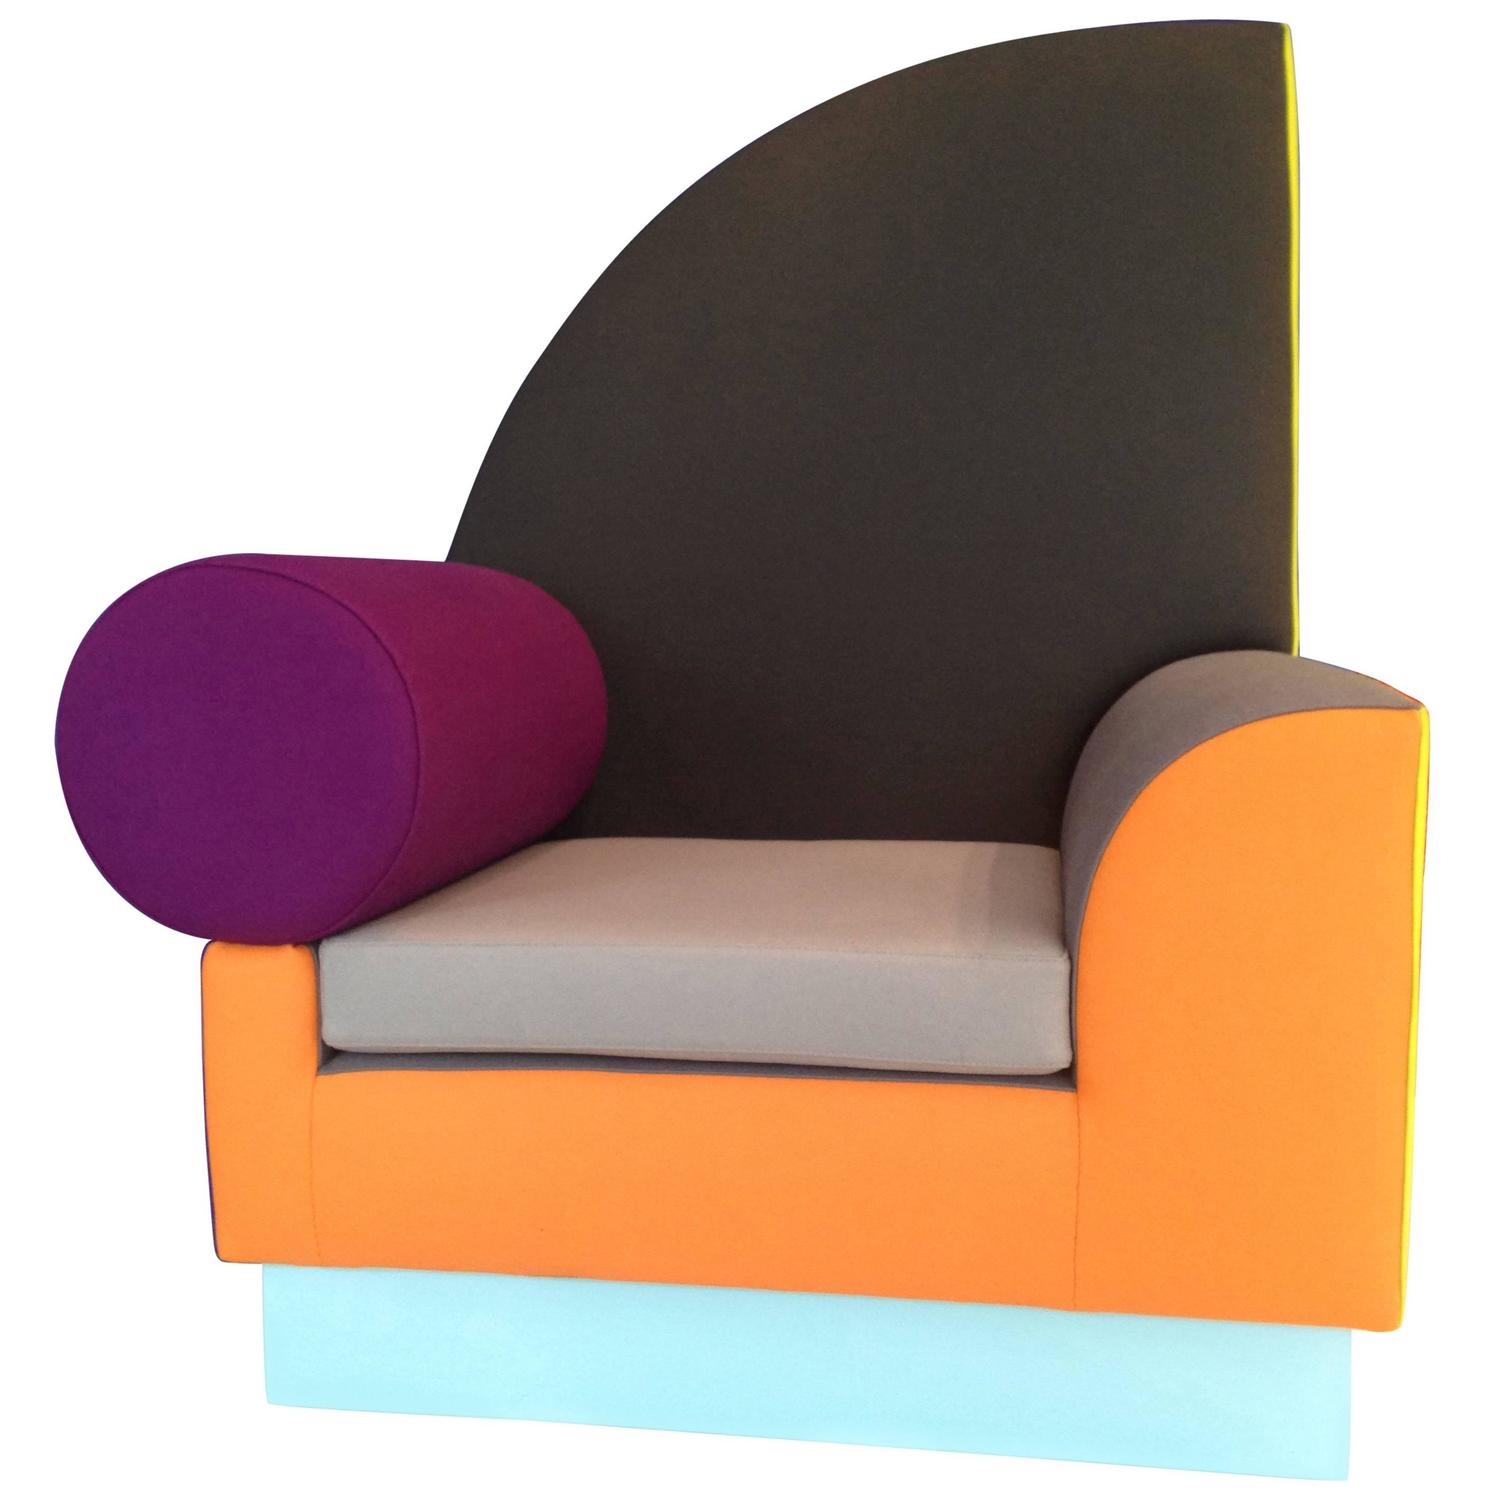 Bel Air Armchair For Sale At 1stdibs